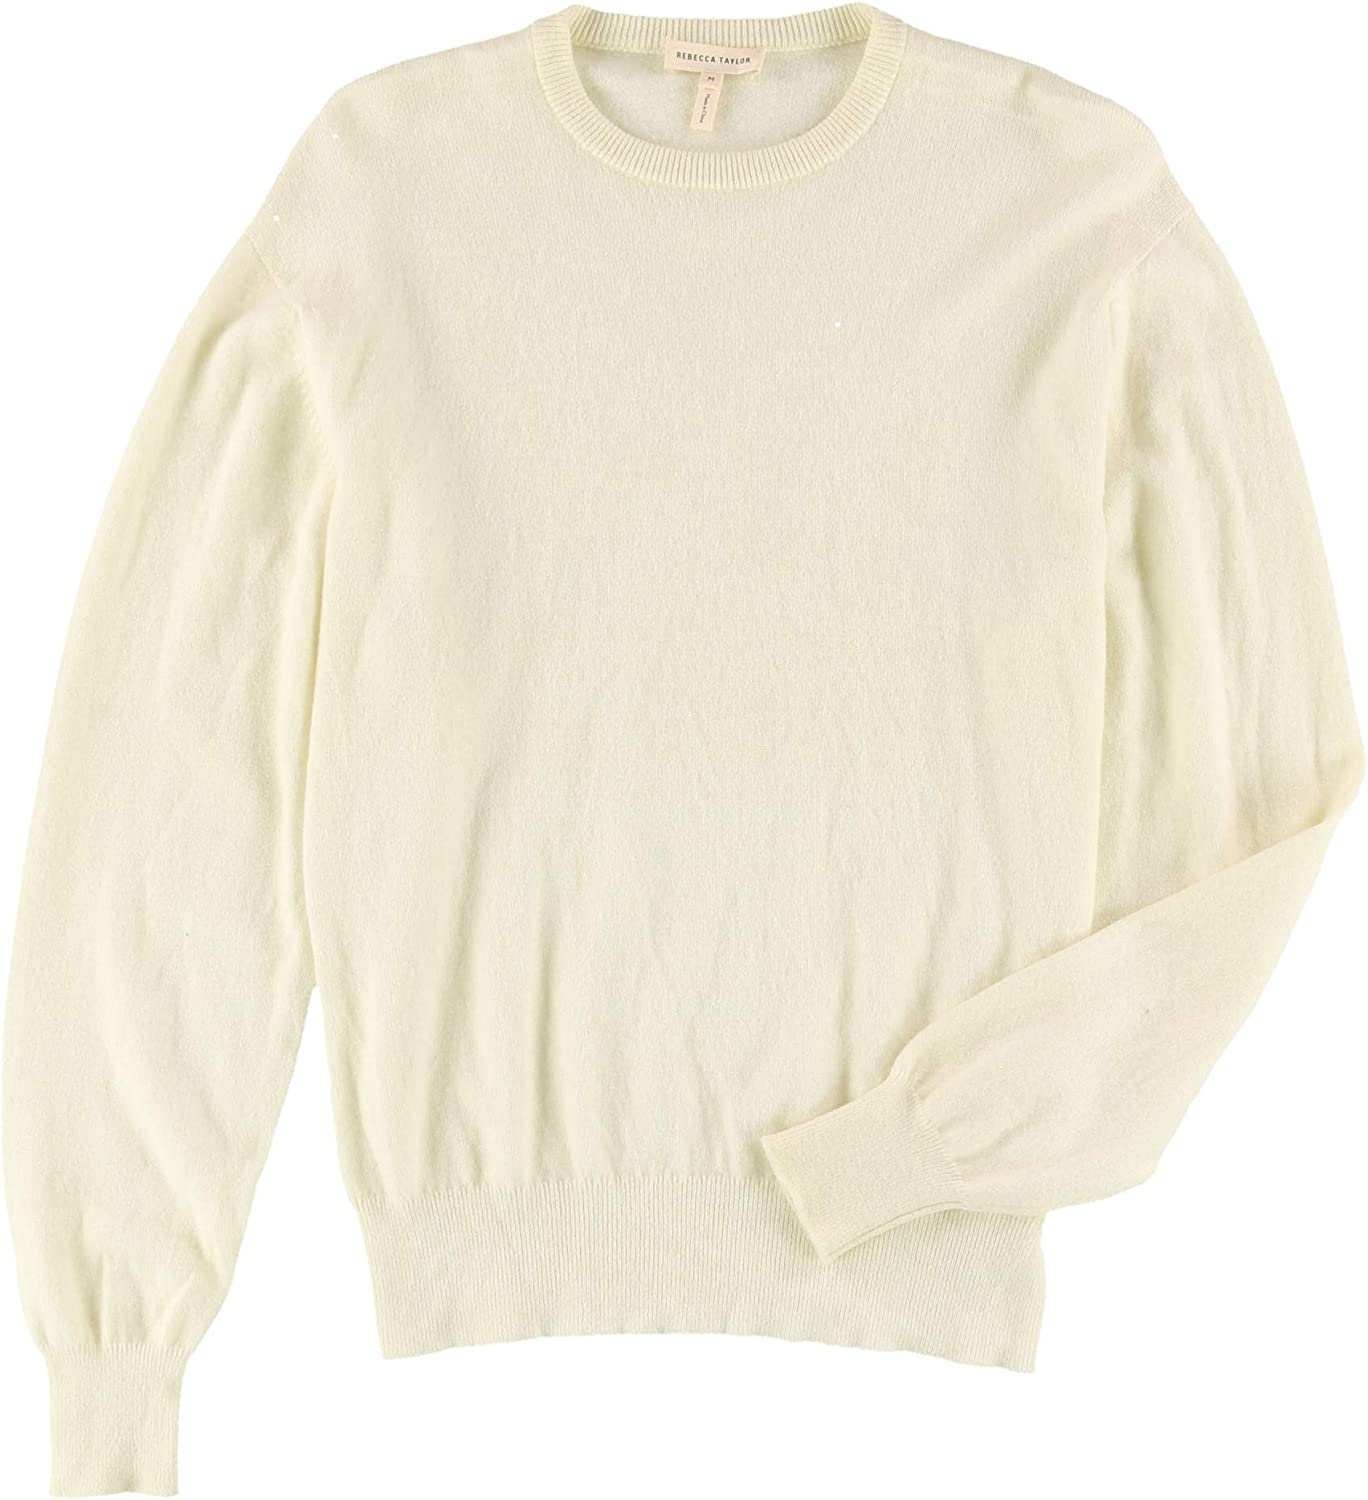 Rebecca Taylor Womens LS Knit Pullover Sweater, Off-White, Medium